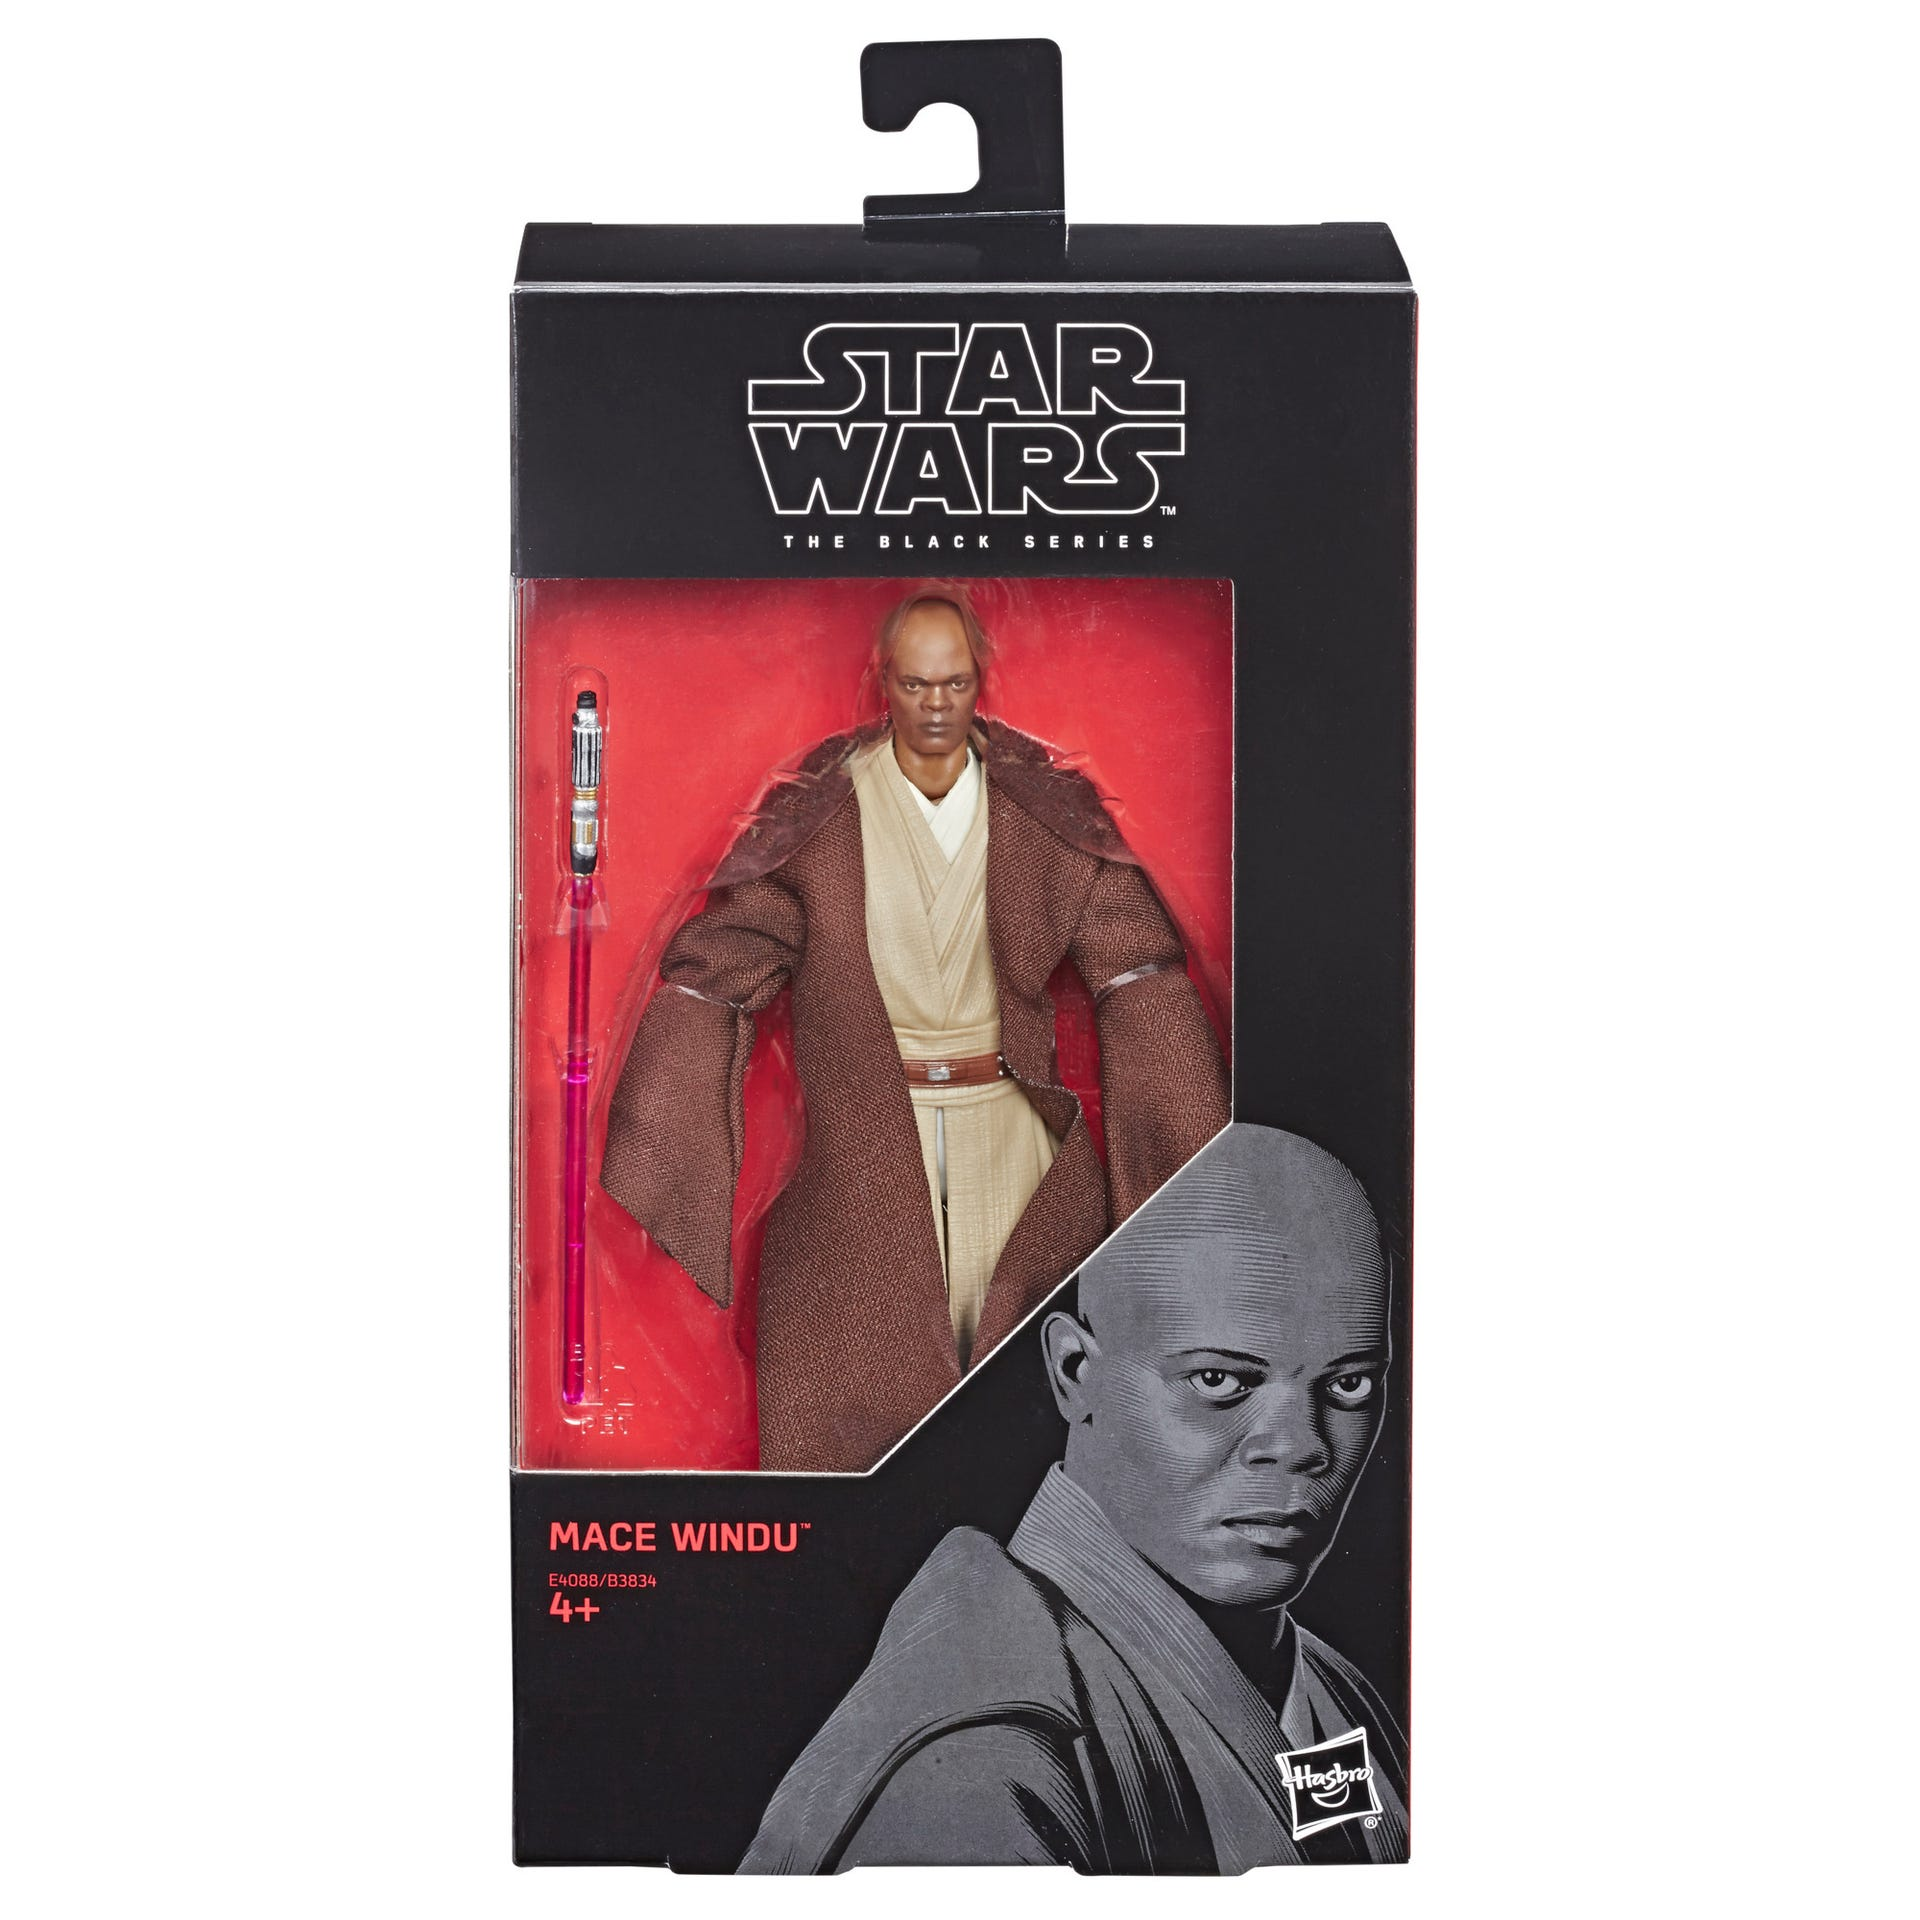 Star Wars The Black Series Star Wars The Black Series 6-inch Mace Windu Figure E4088ES00 5010993568062